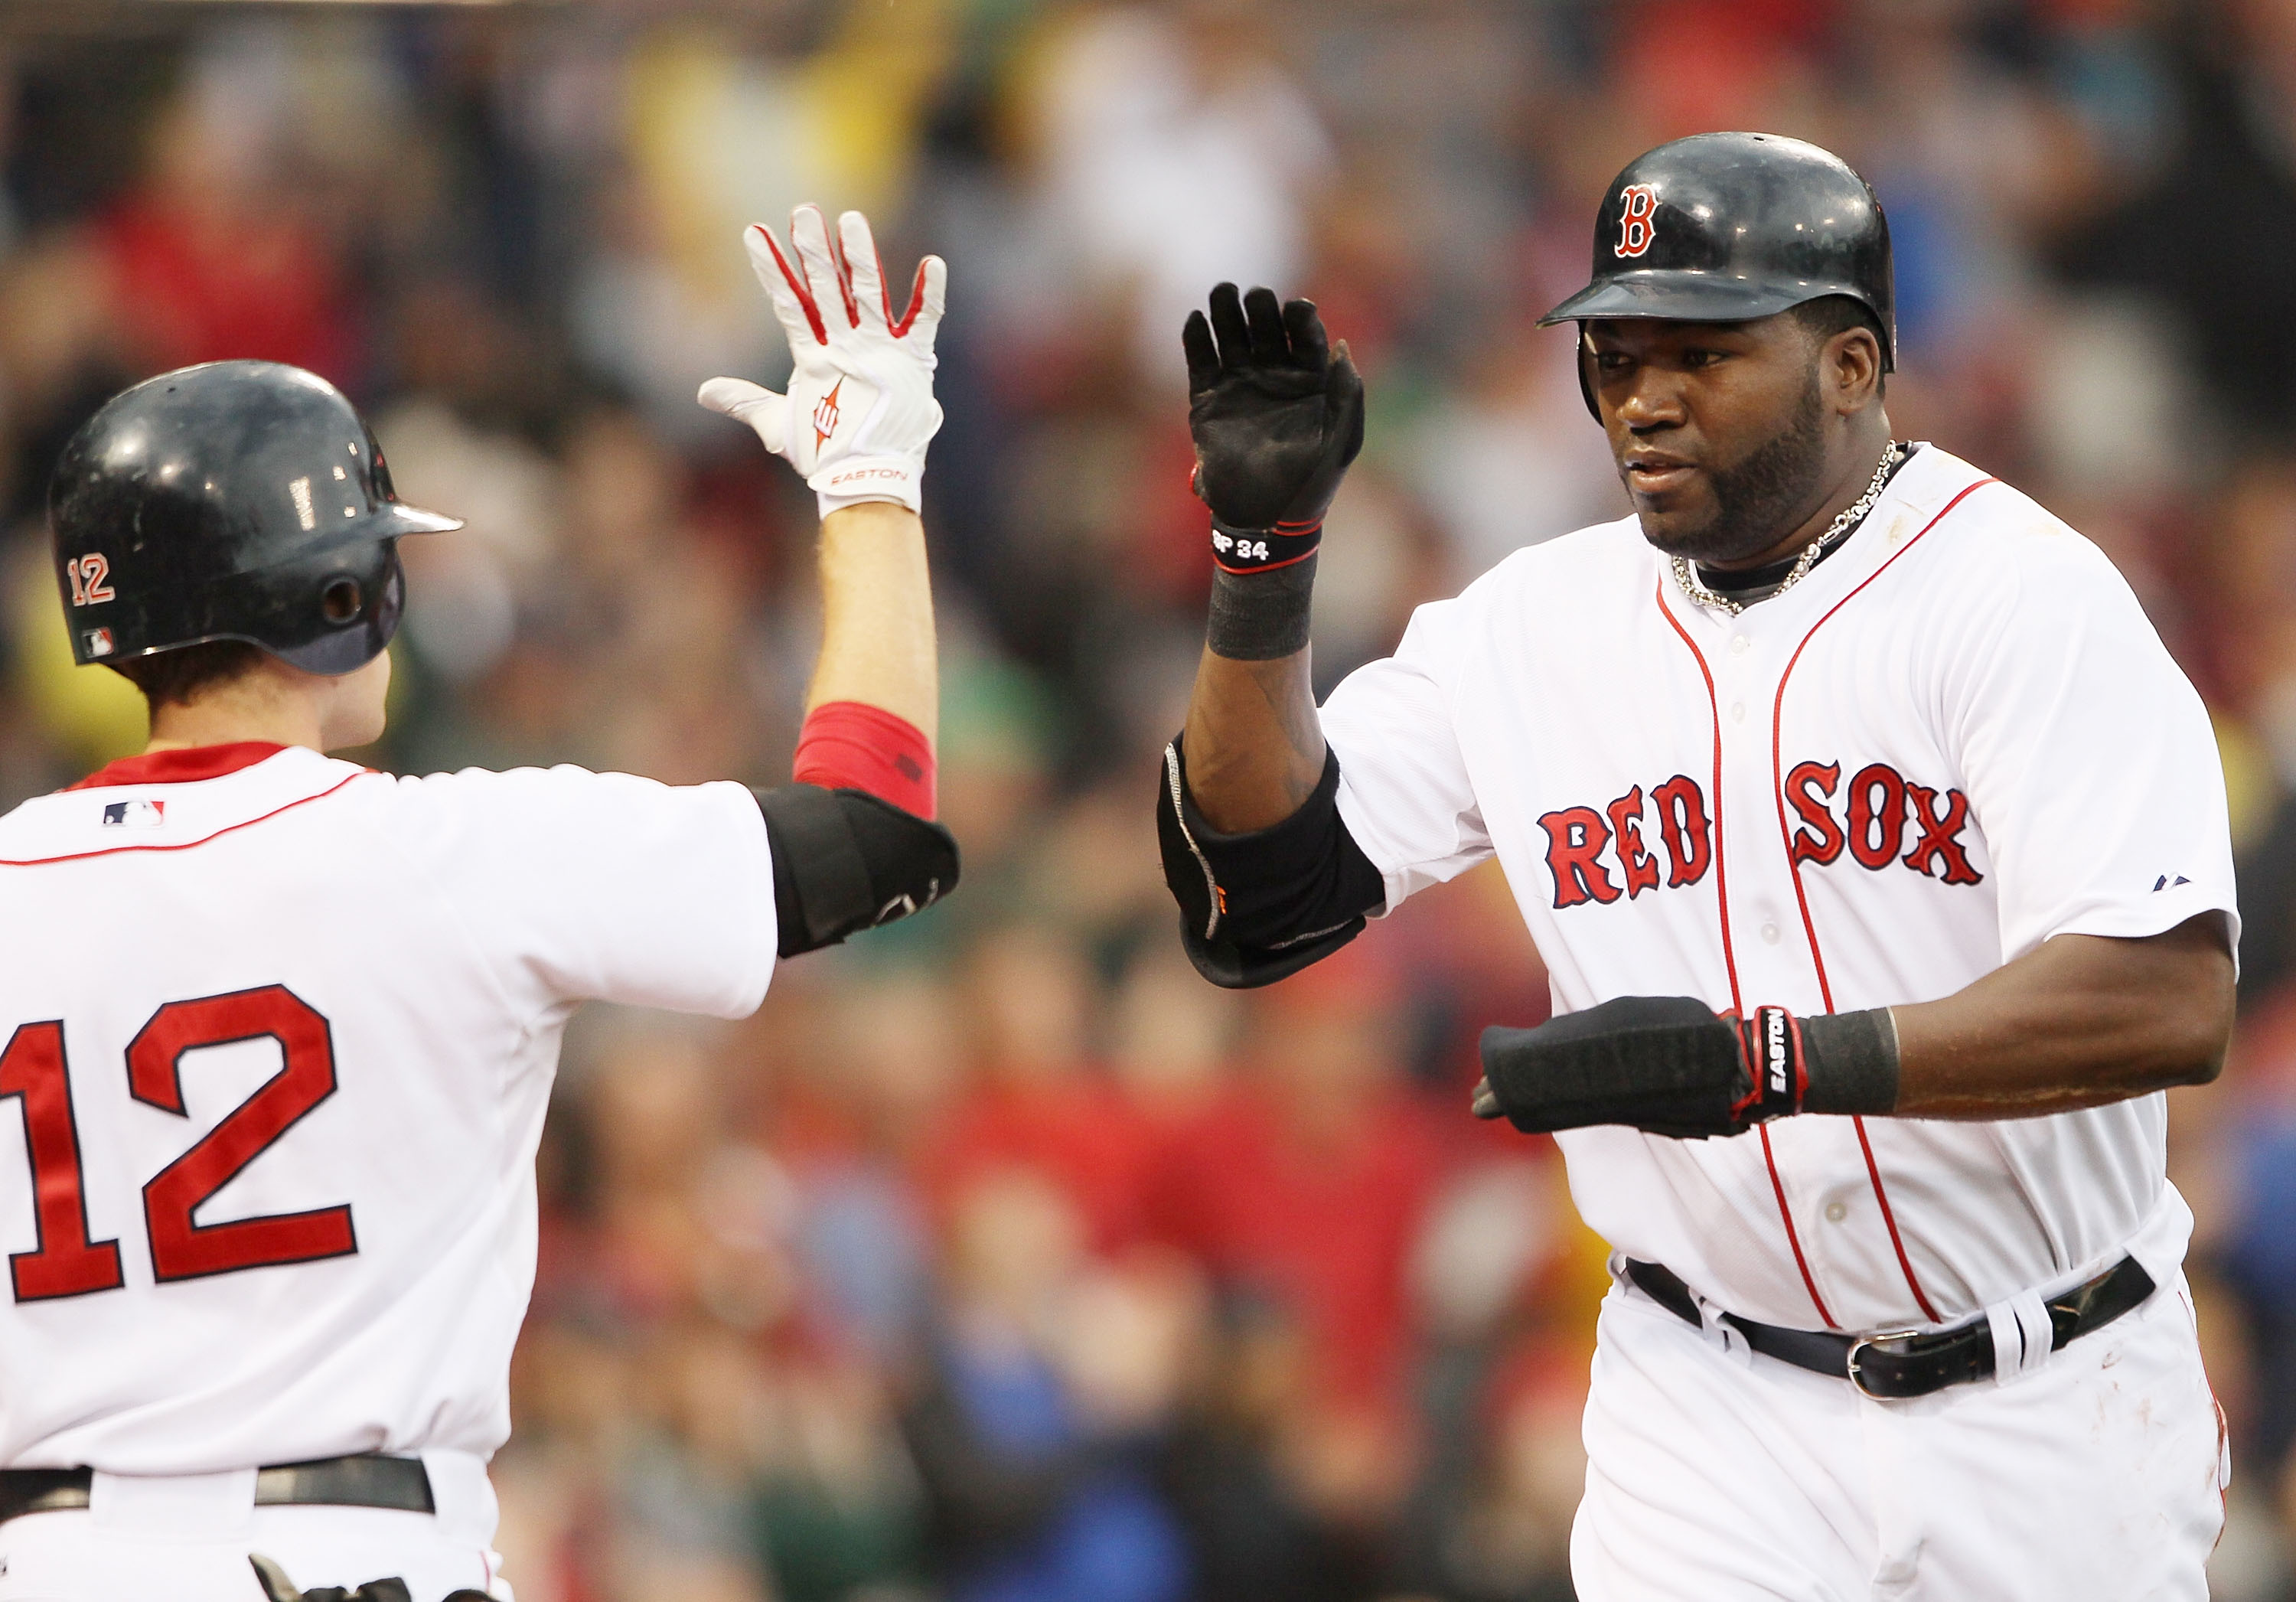 BOSTON - AUGUST 22:  David Ortiz #34 of the Boston Red Sox celebrates his run with teammate Jed Lowrie #12 in the fifth inning against the Toronto Blue Jays on August 22, 2010 at Fenway Park in Boston, Massachusetts.  (Photo by Elsa/Getty Images)